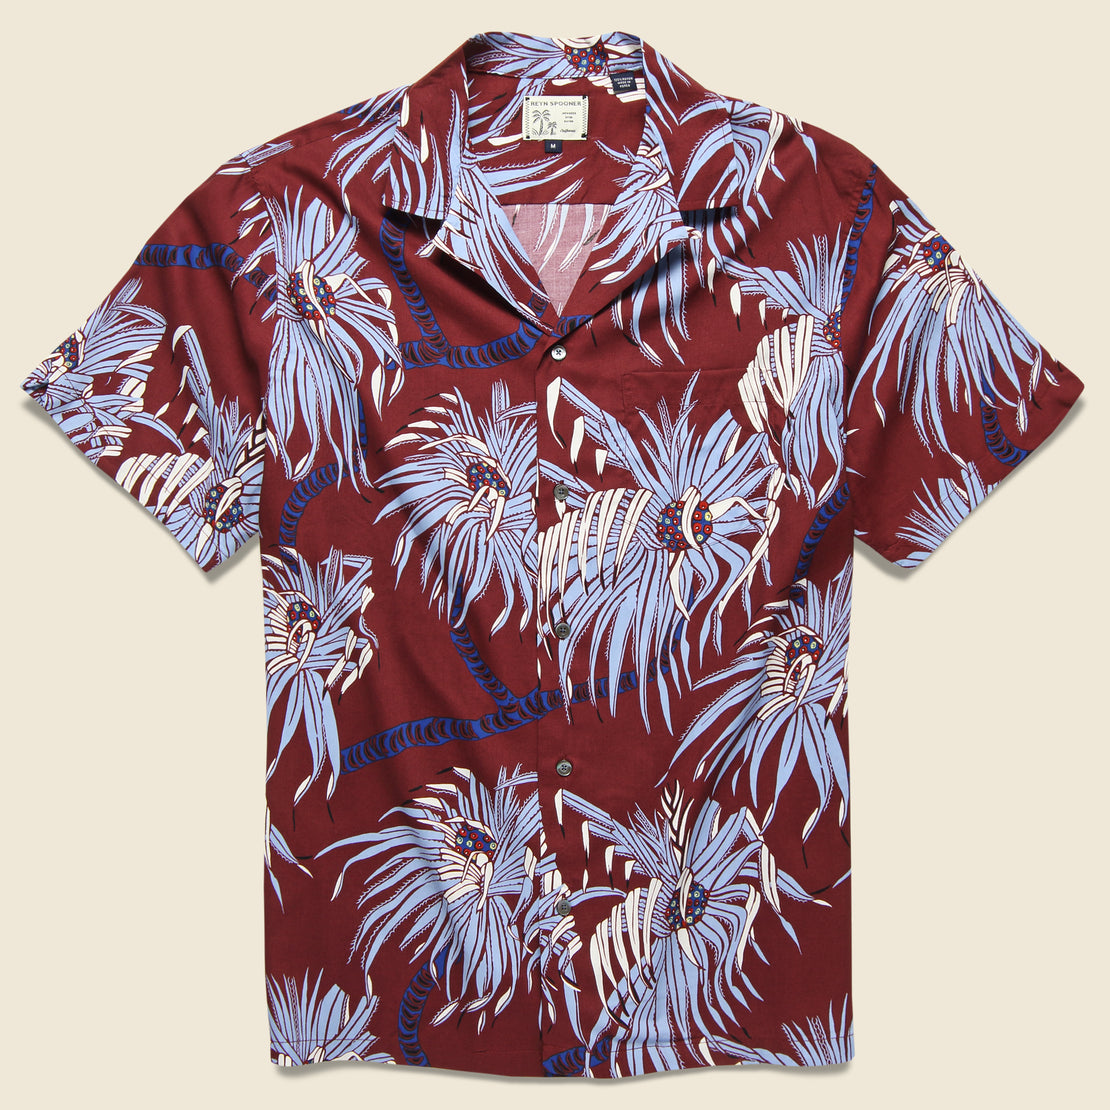 Reyn Spooner Pololu Camp Shirt - Oxblood Red